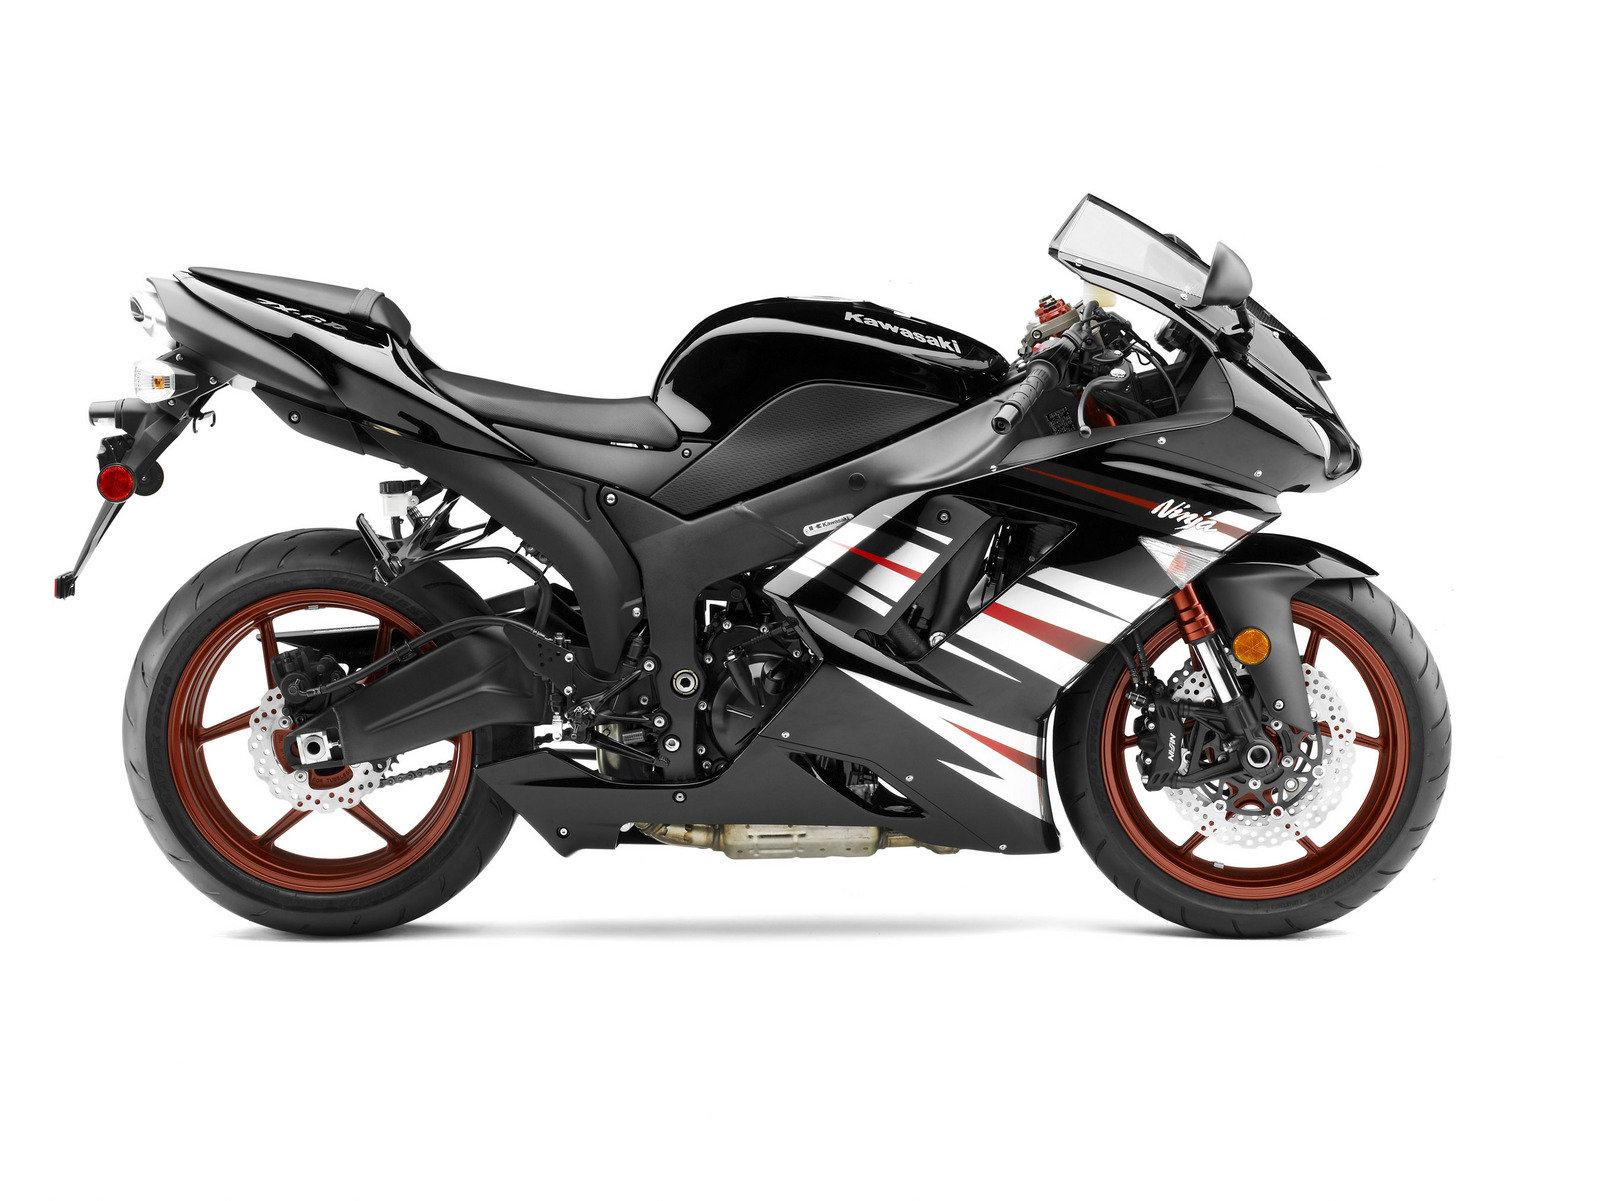 2008 kawasaki ninja zx 6r picture 220722 motorcycle review top speed. Black Bedroom Furniture Sets. Home Design Ideas